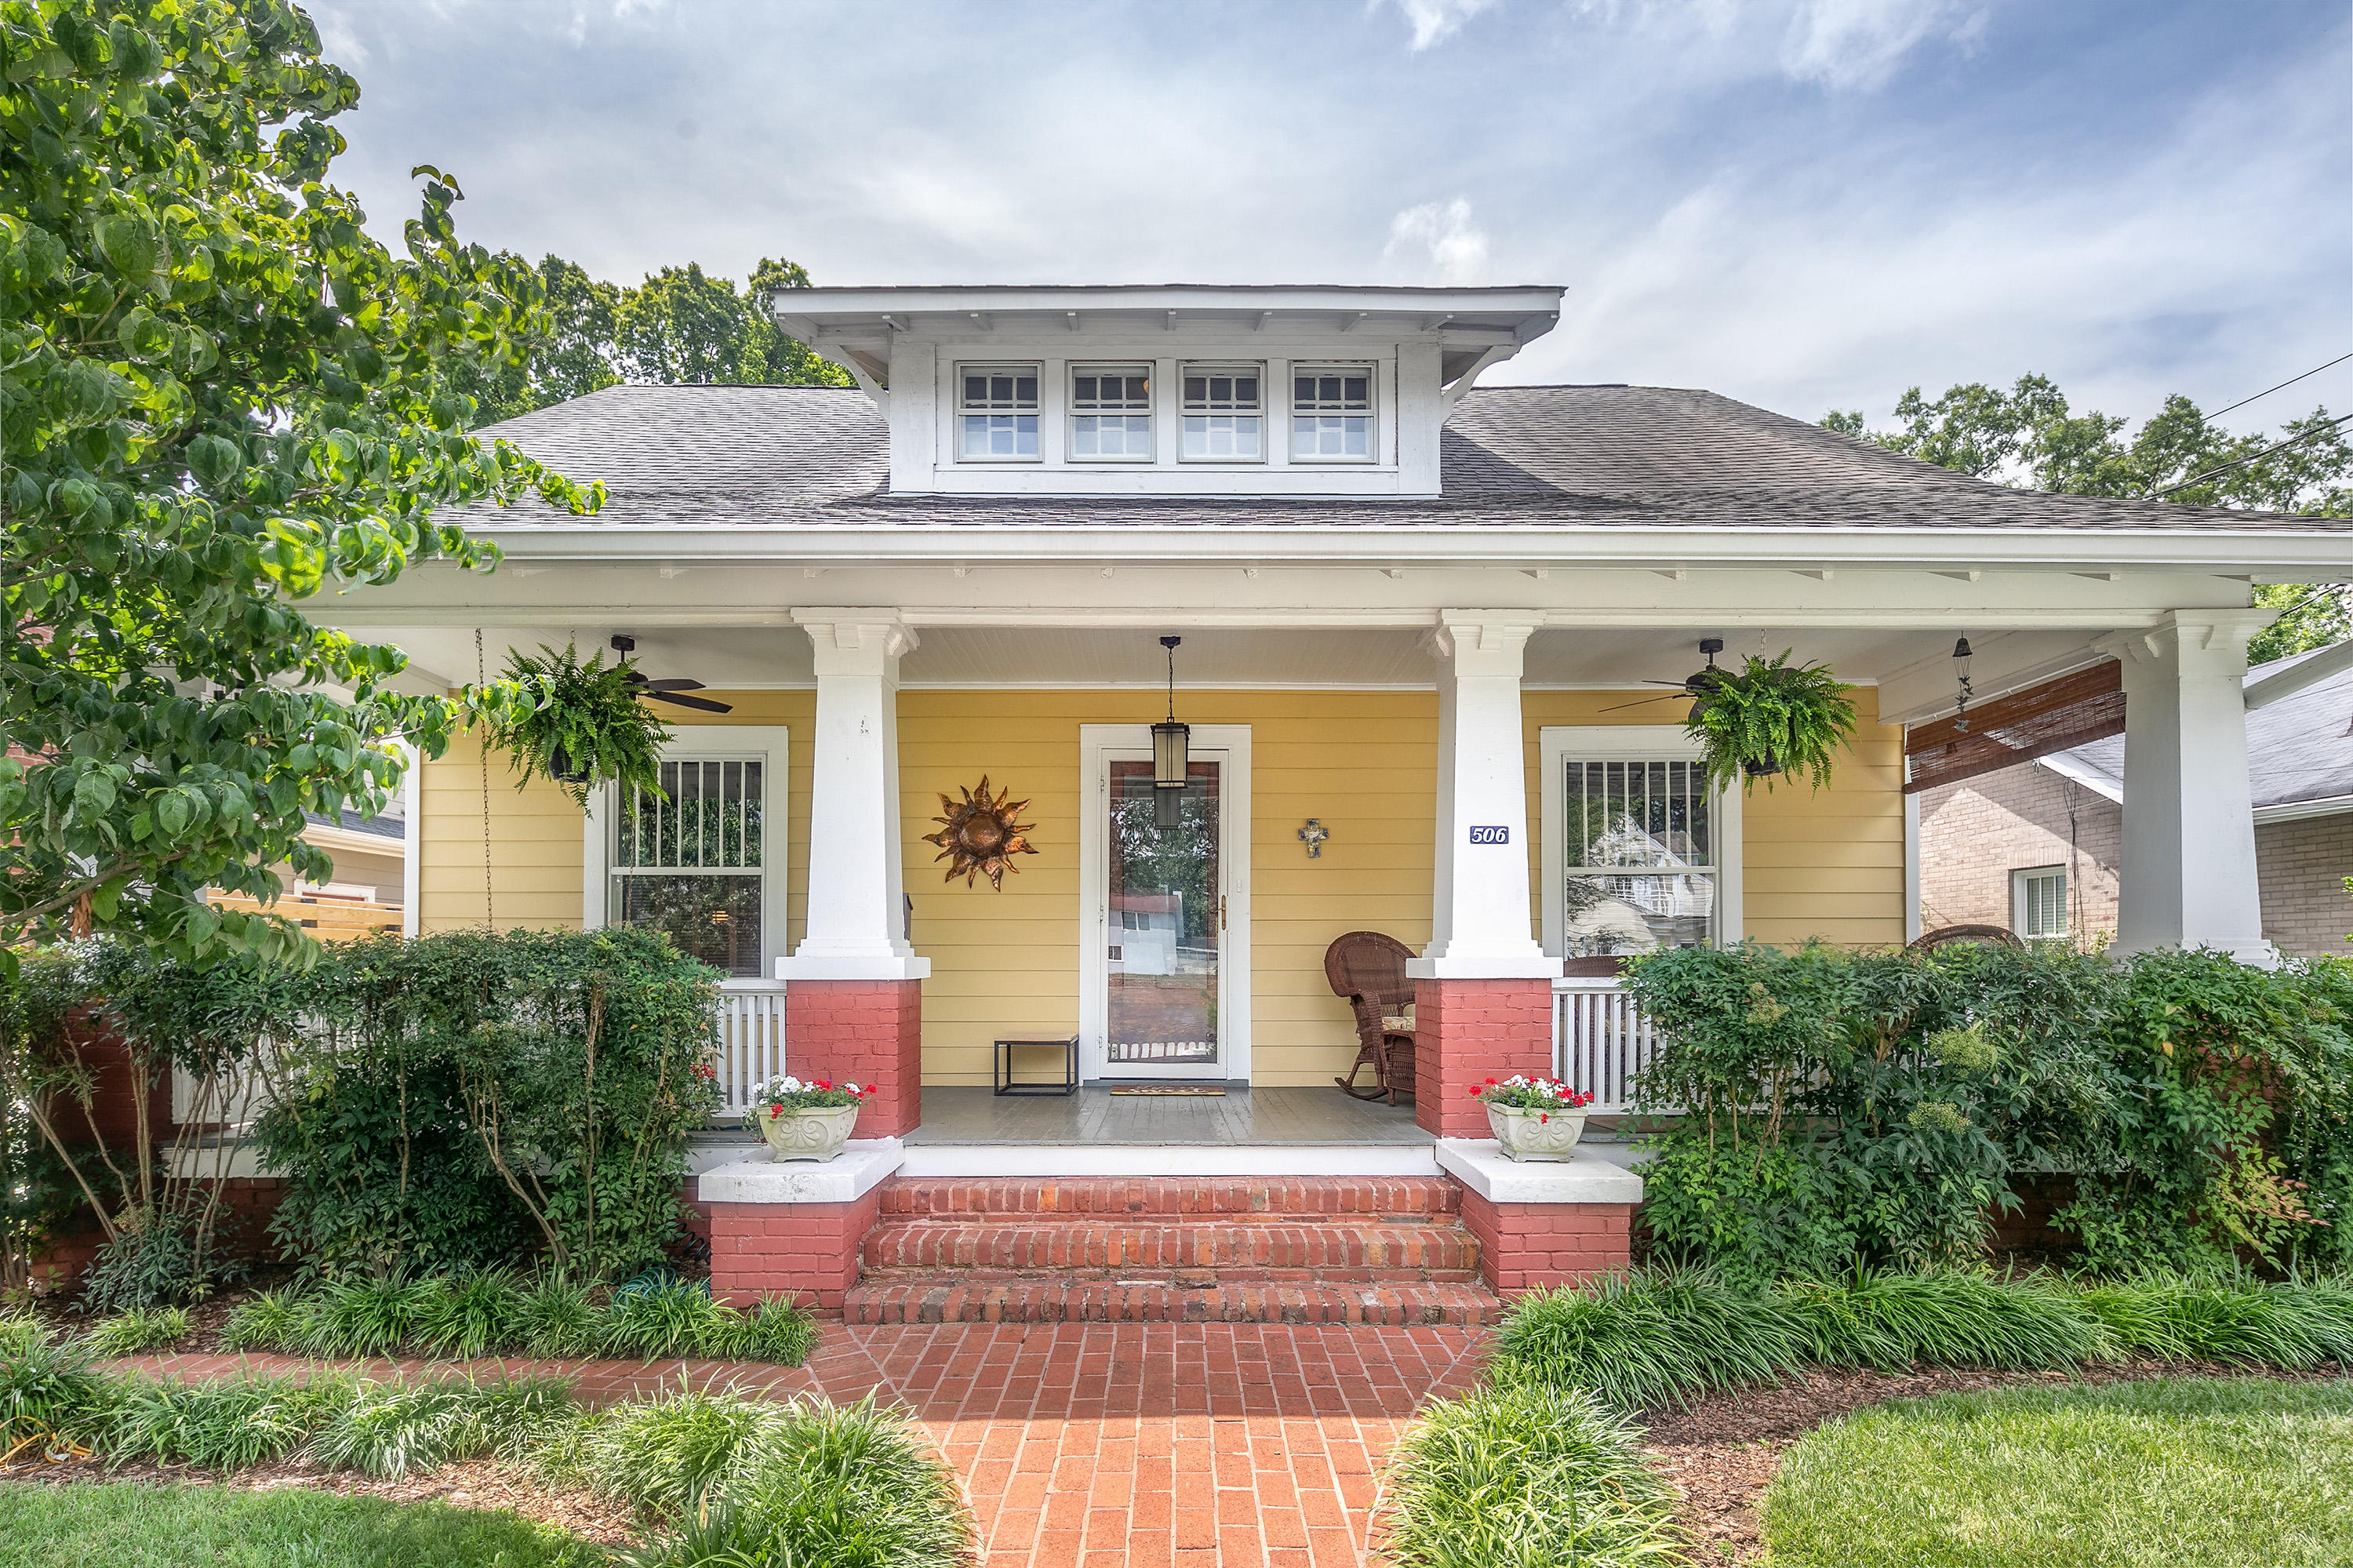 Details for 506 Young, Chattanooga, TN 37405